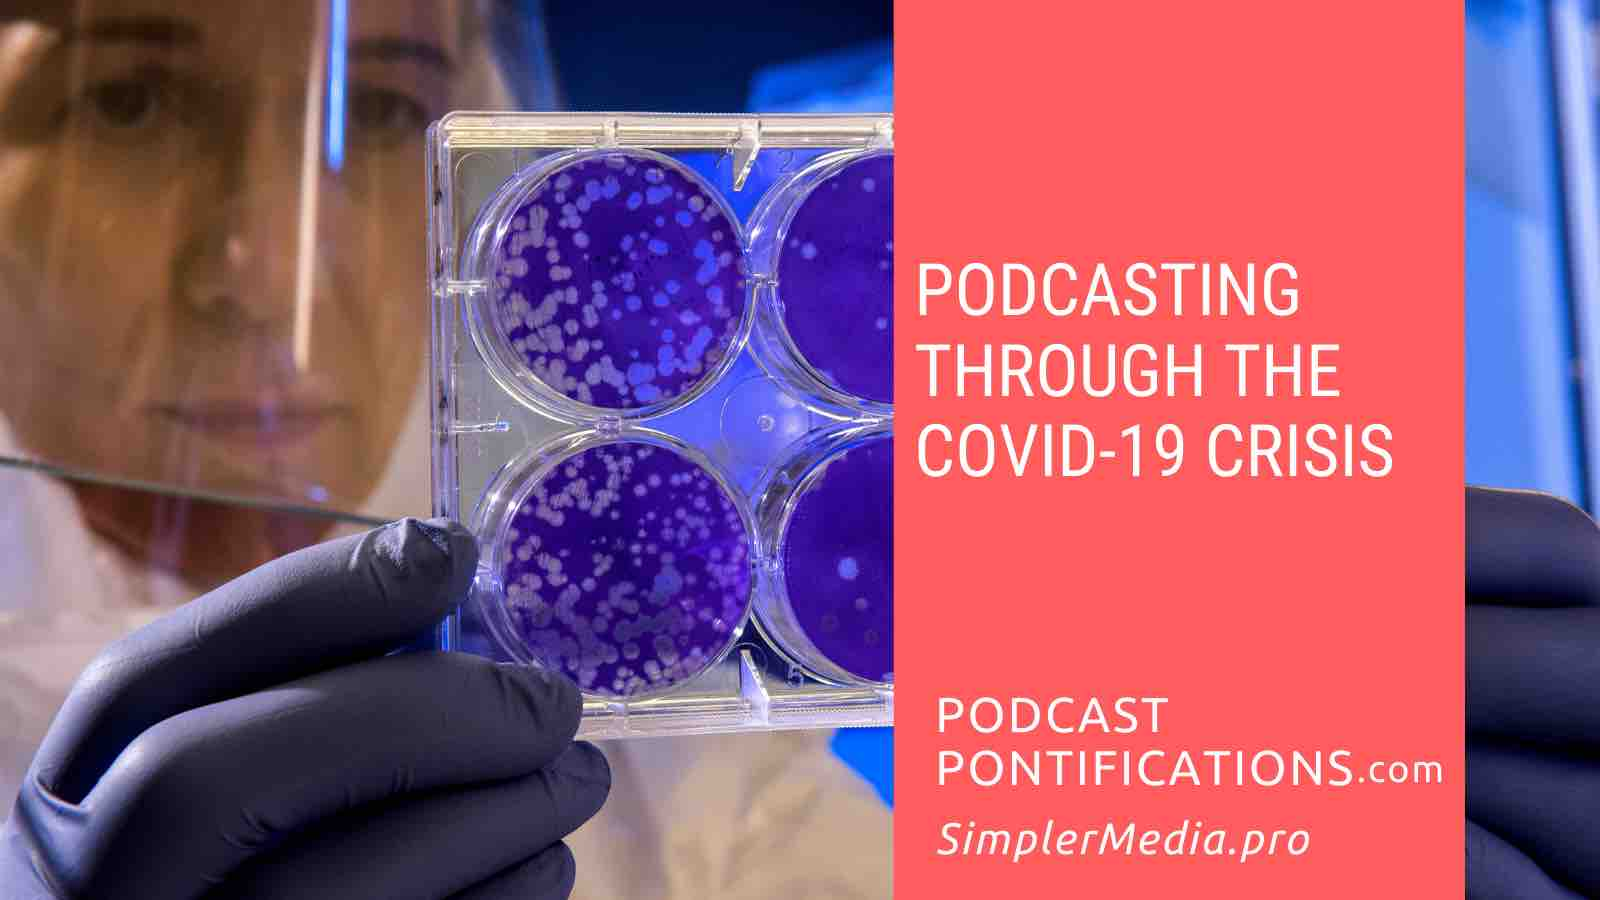 Podcasting Through The COVID-19 Crisis